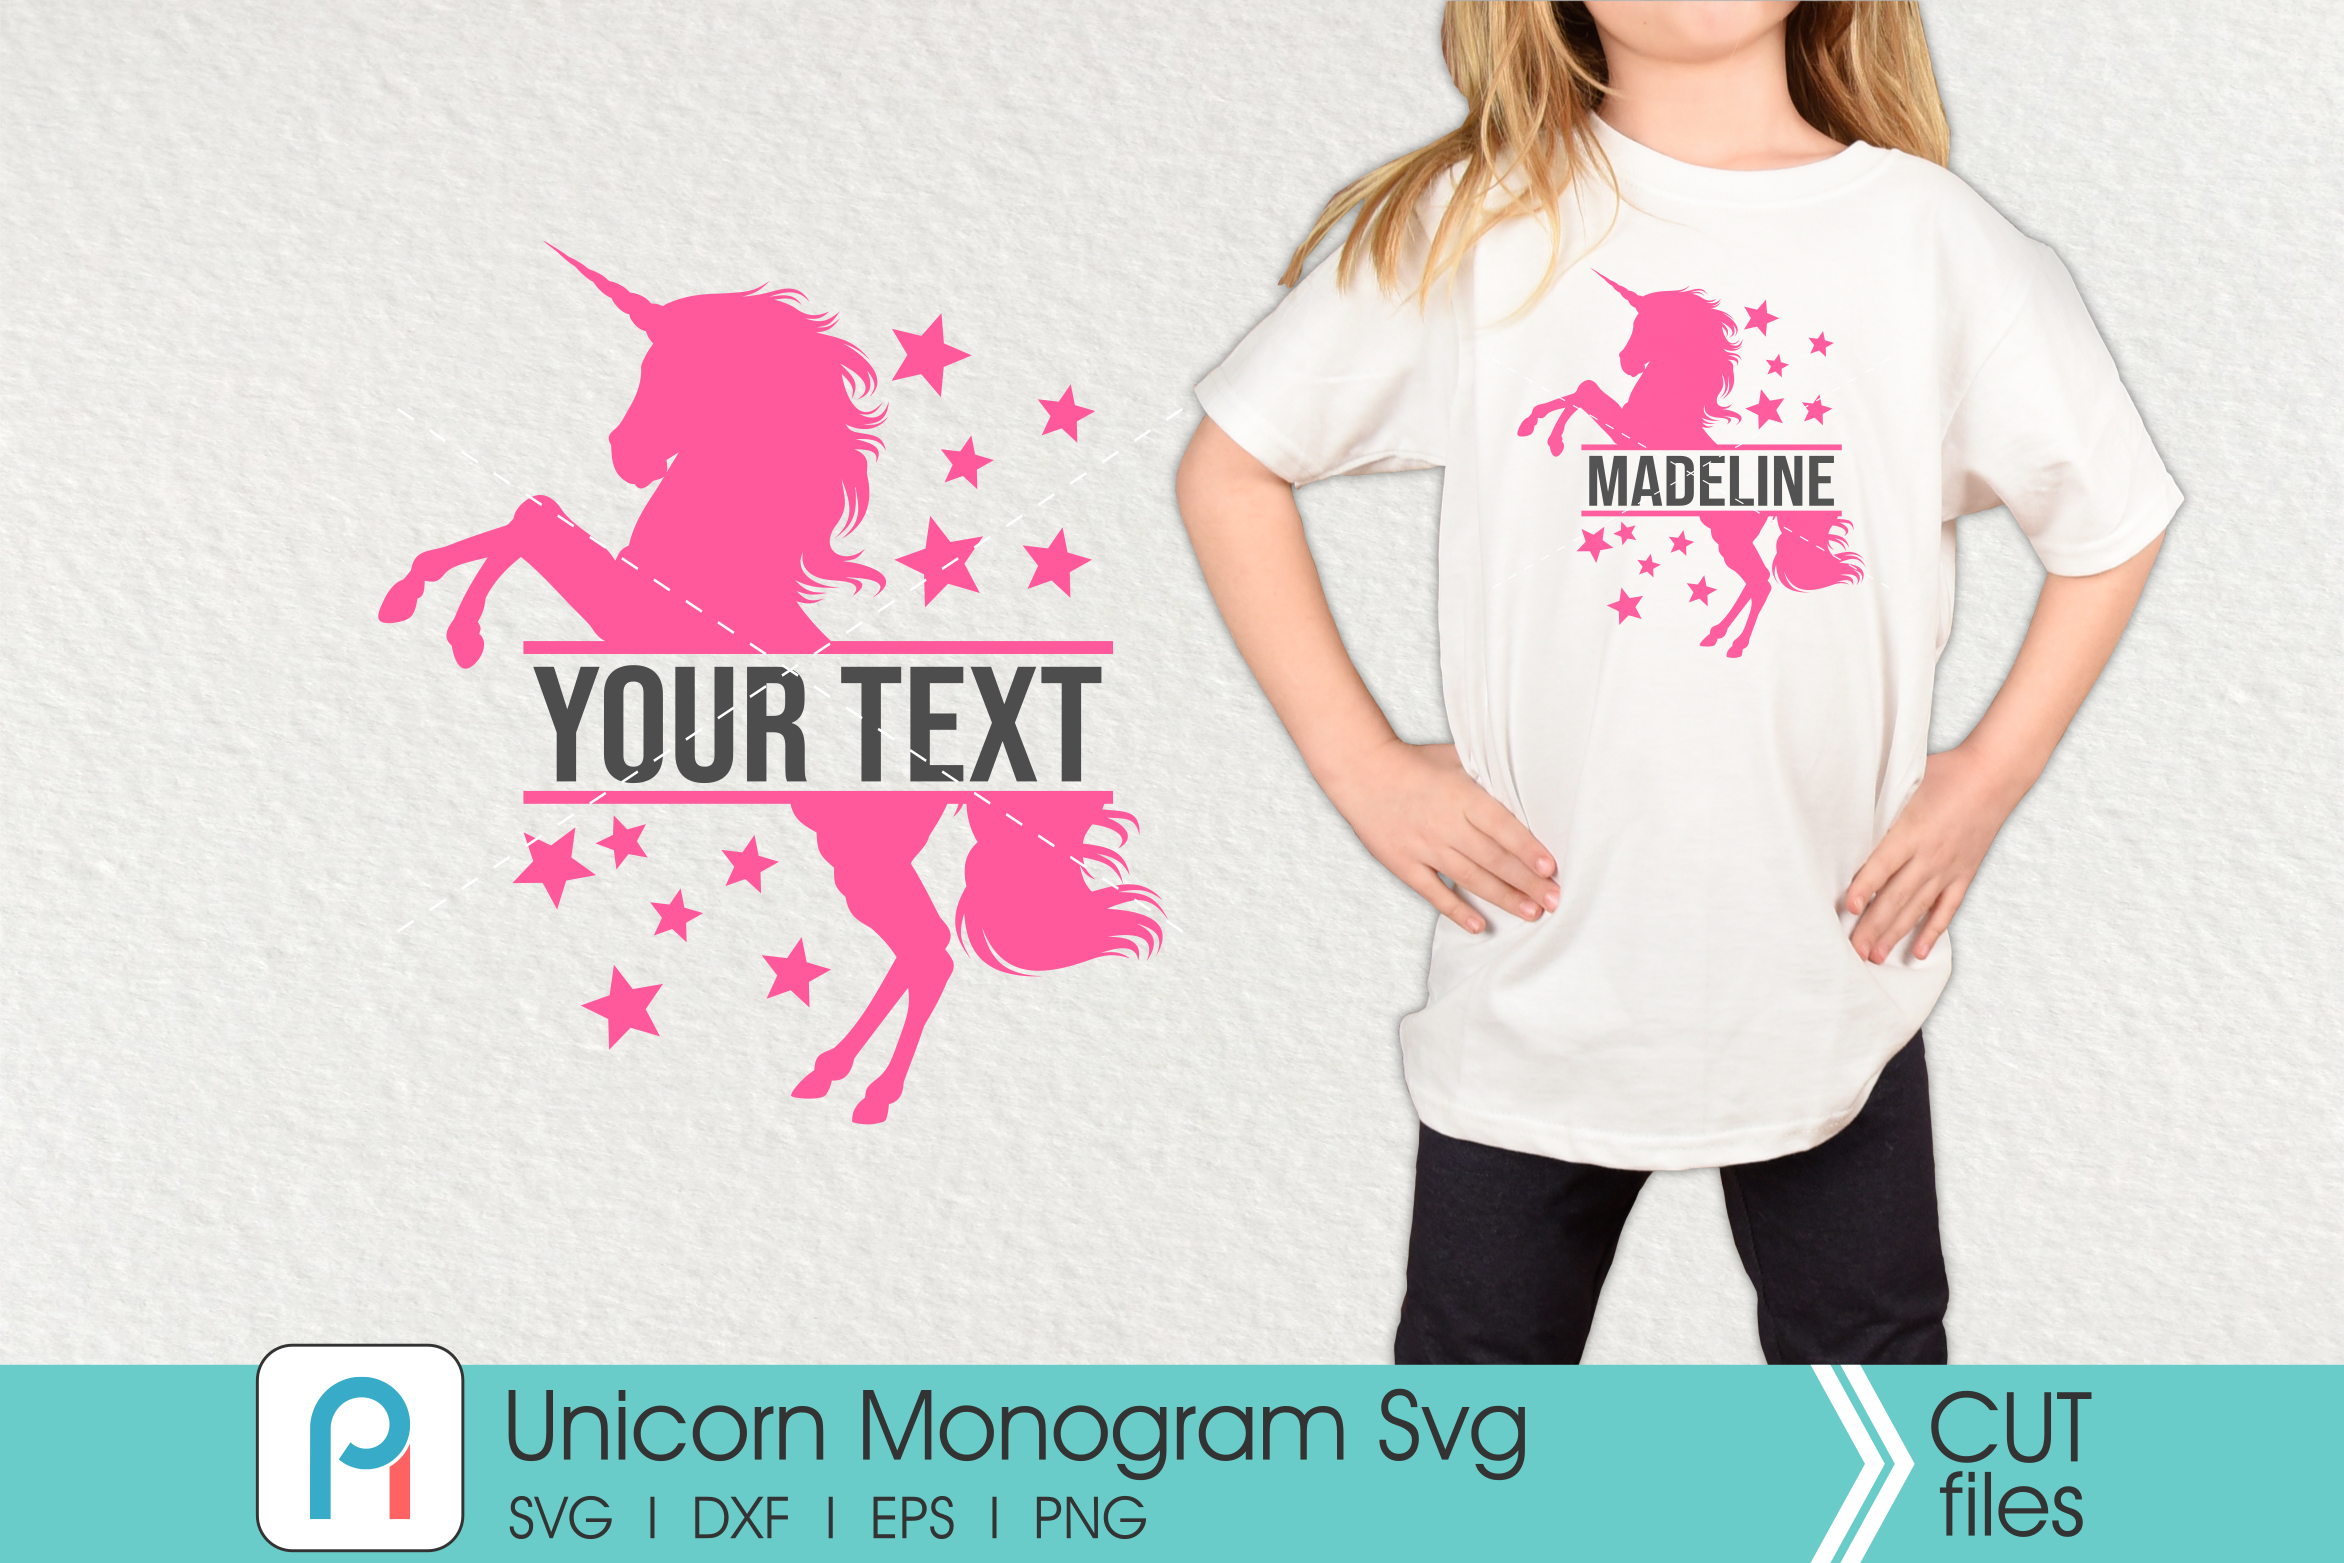 Unicorn Monogram Graphic By Pinoyartkreatib Creative Fabrica